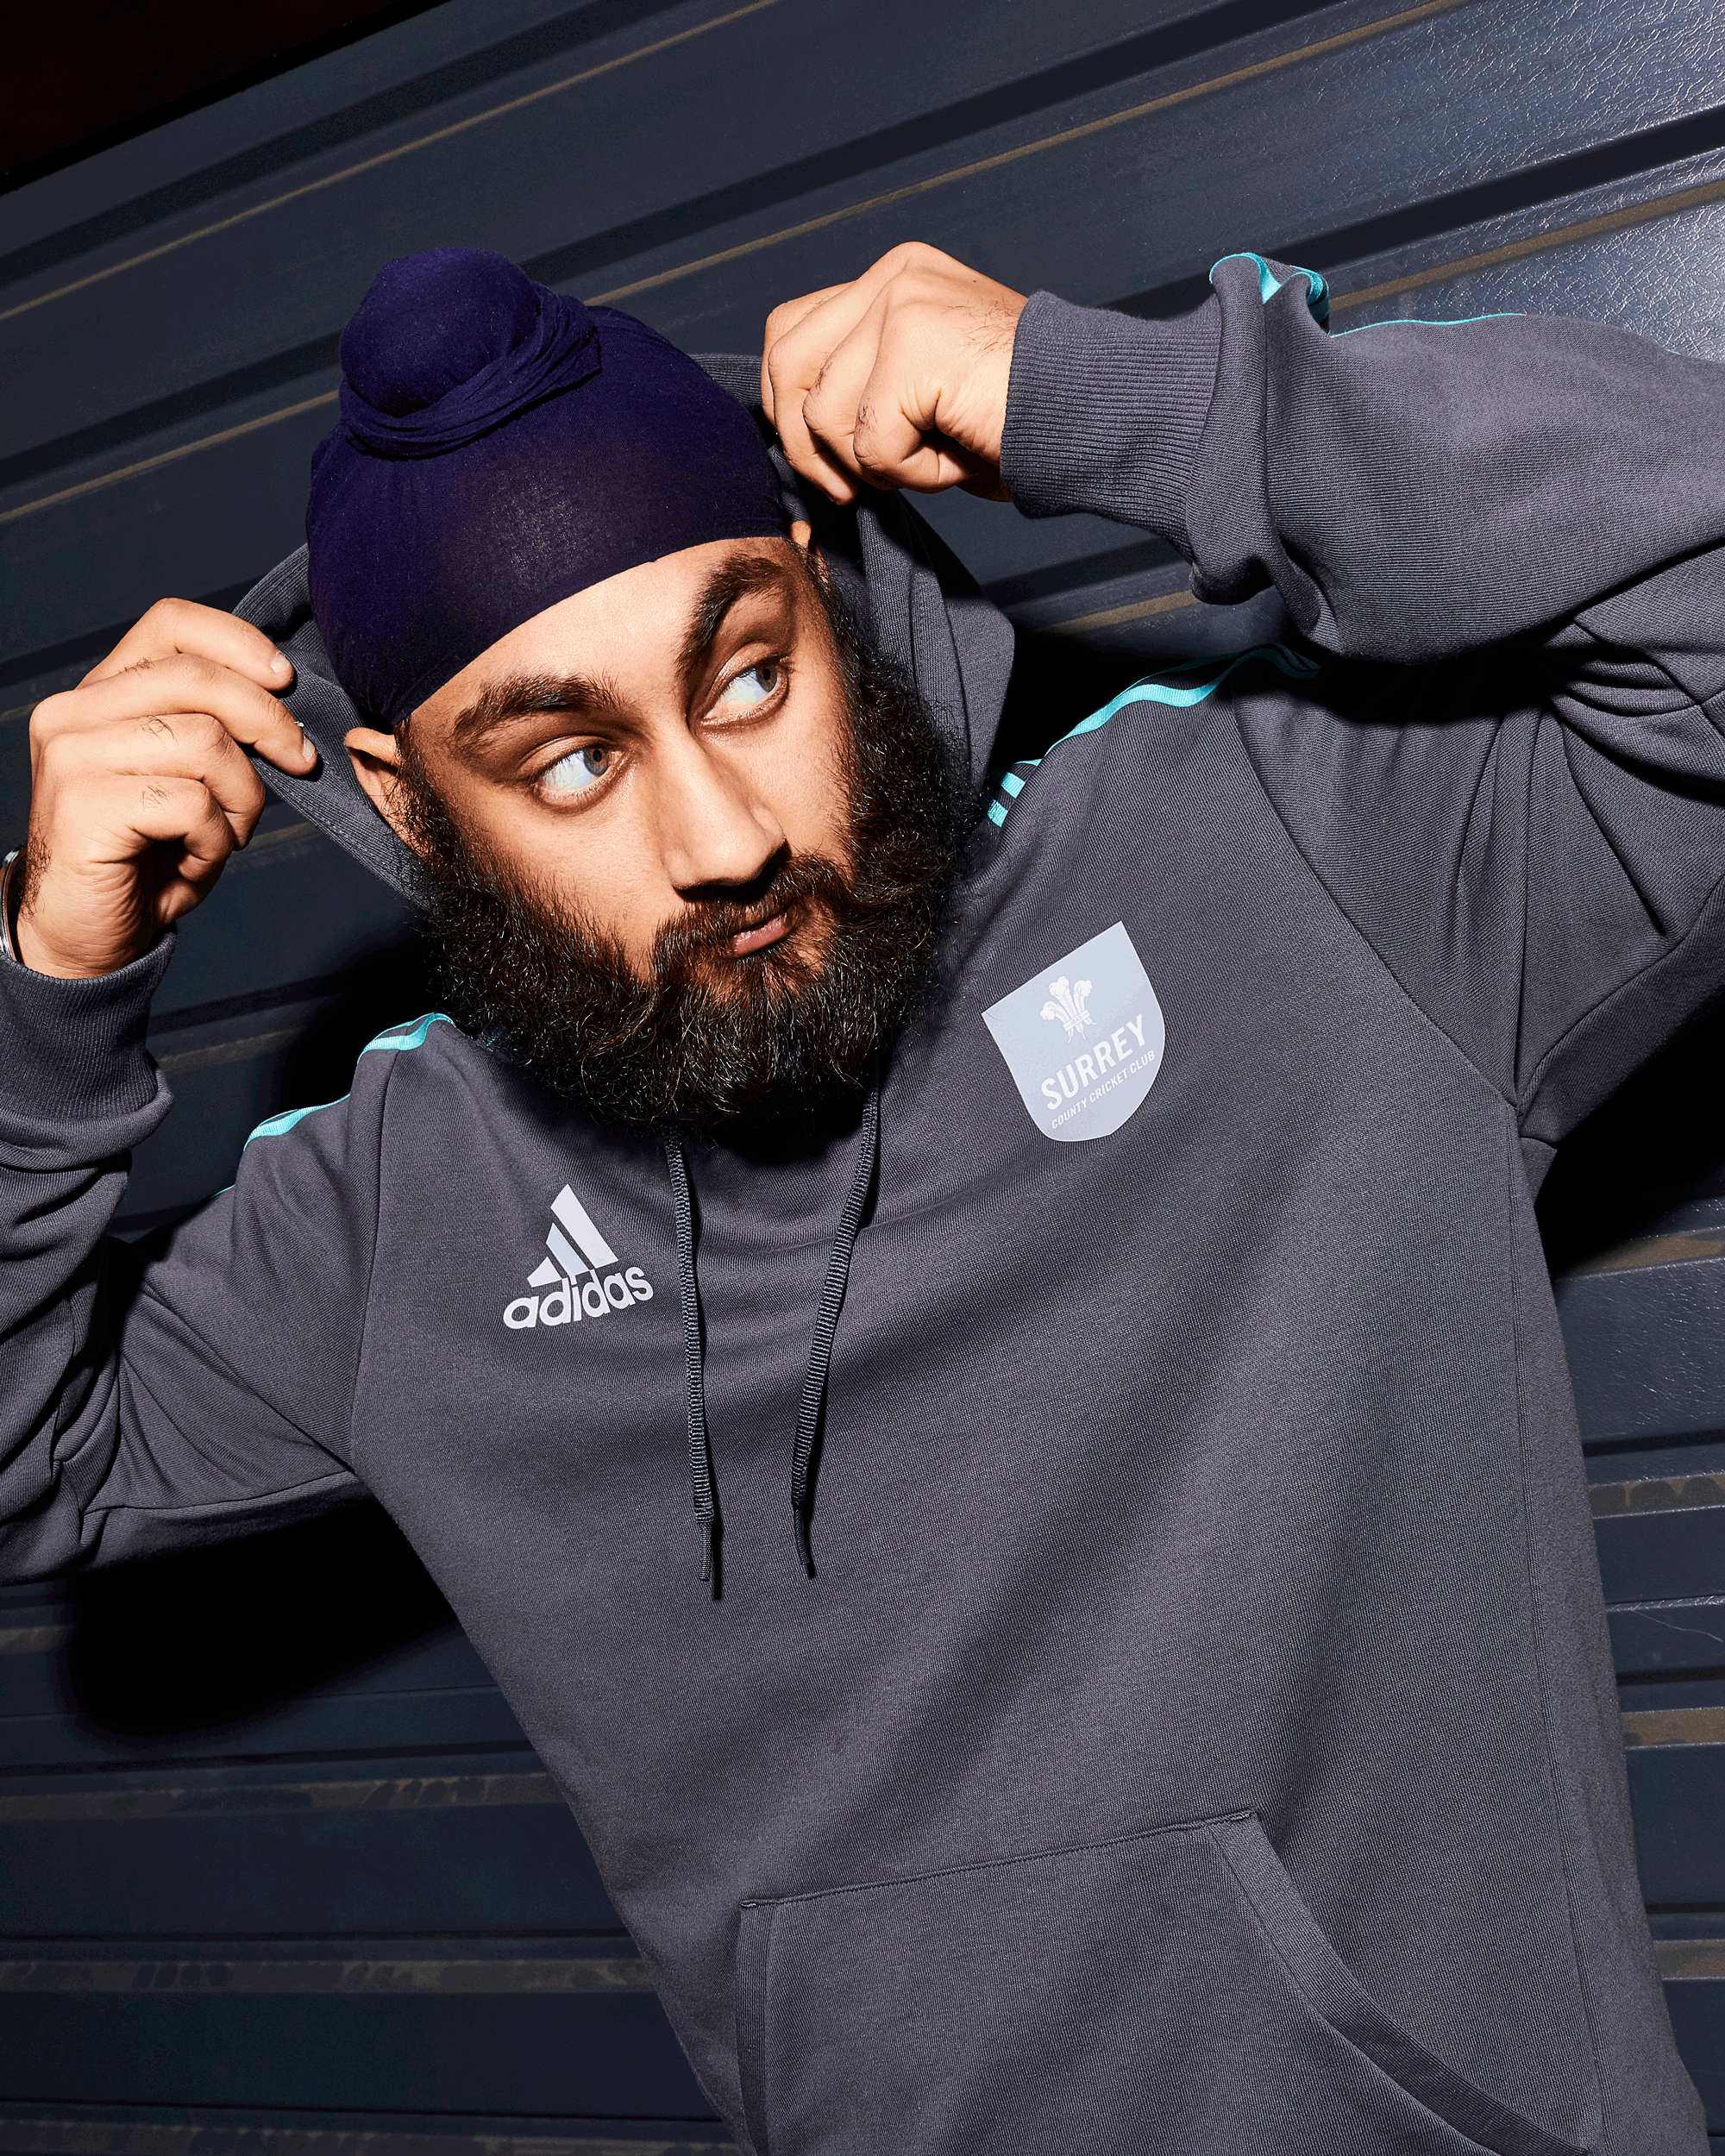 Surrey-Cricket-Launch-Adidas-26-02-19_3_0620.png